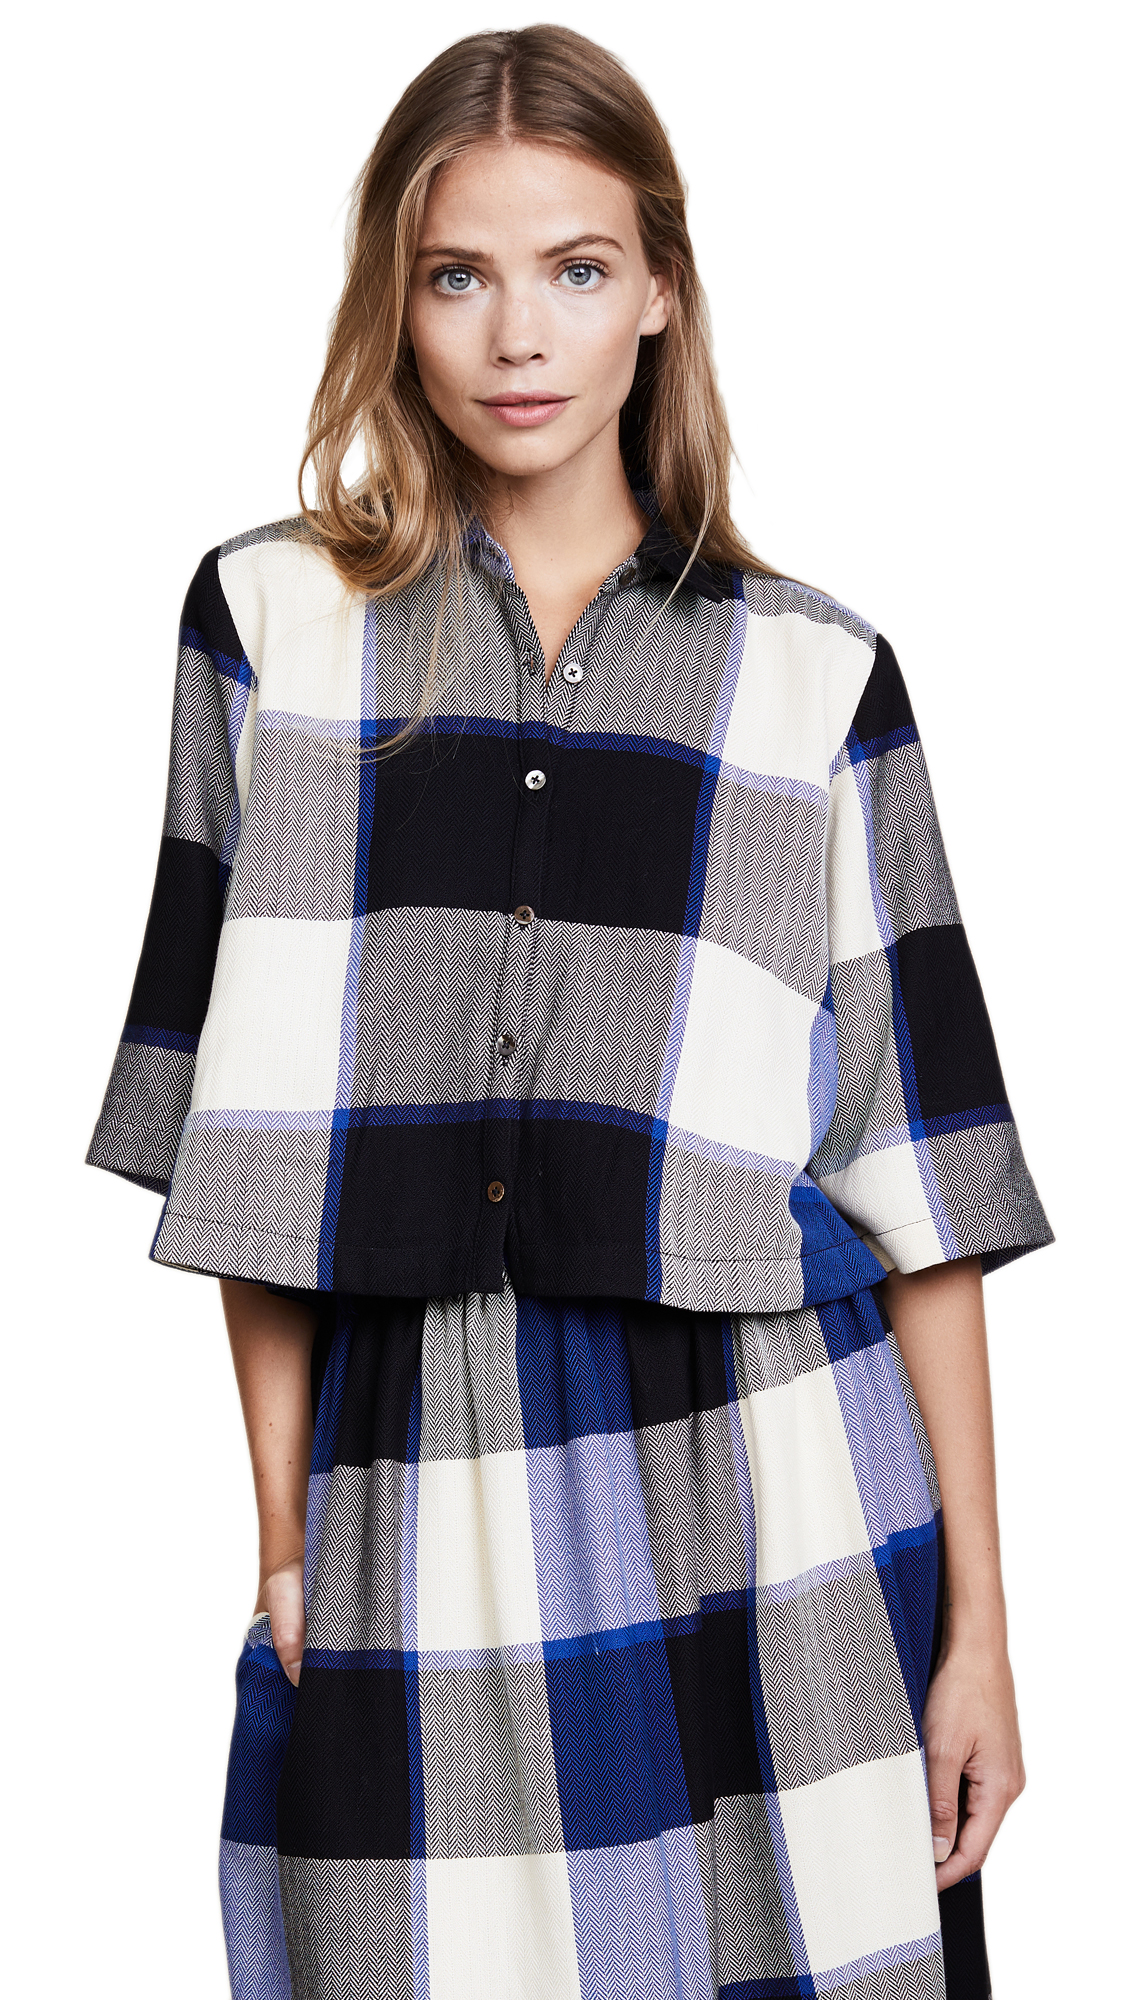 Mara Hoffman Louise Cropped Button Down - Royal Check